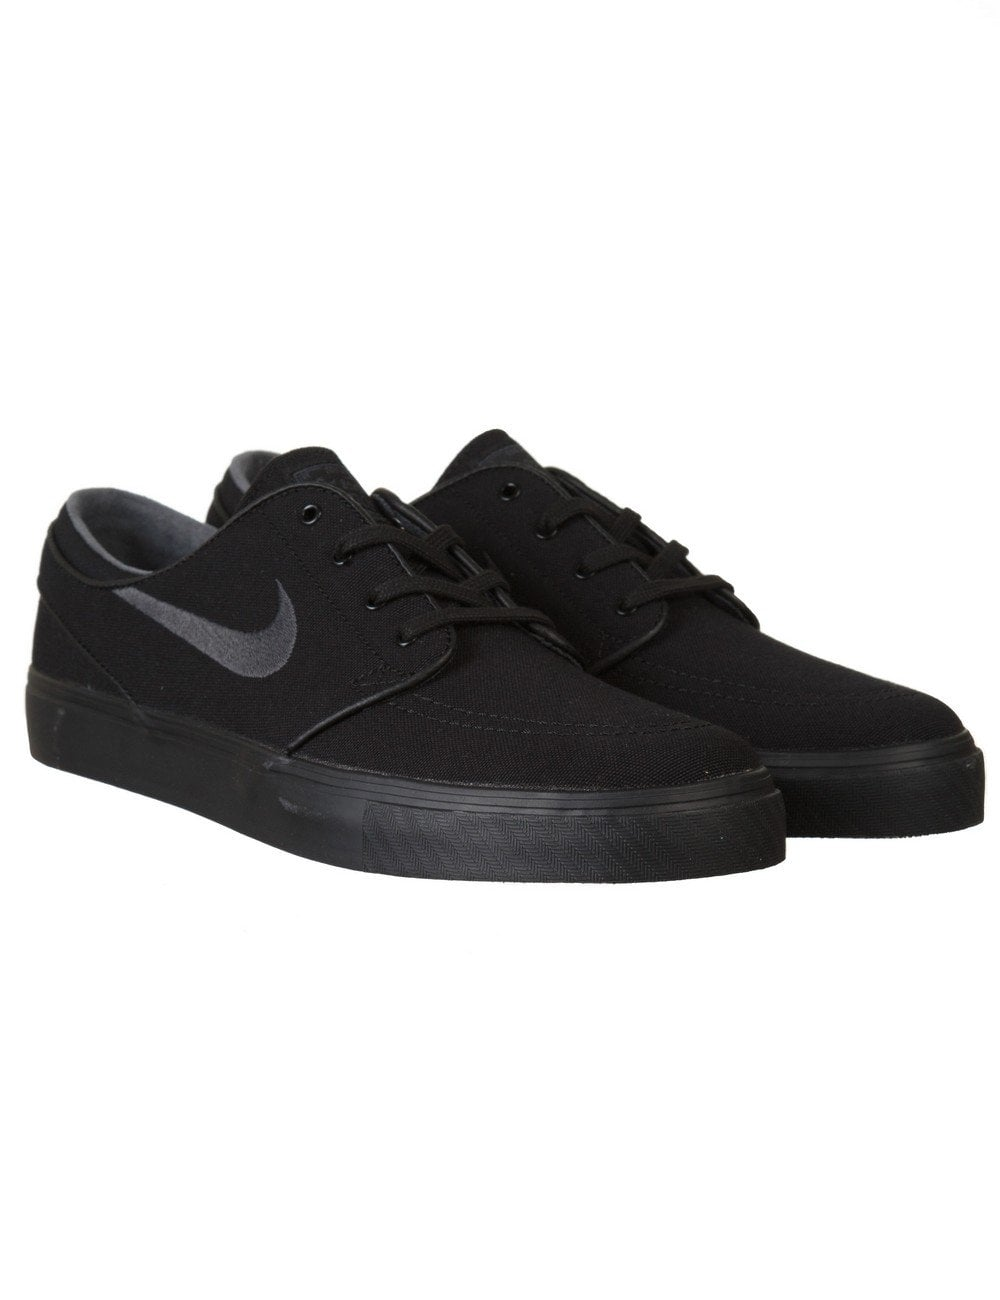 a8829095017 Nike SB Stefan Janoski Shoes - Black Anthracite (Canvas) - Footwear ...